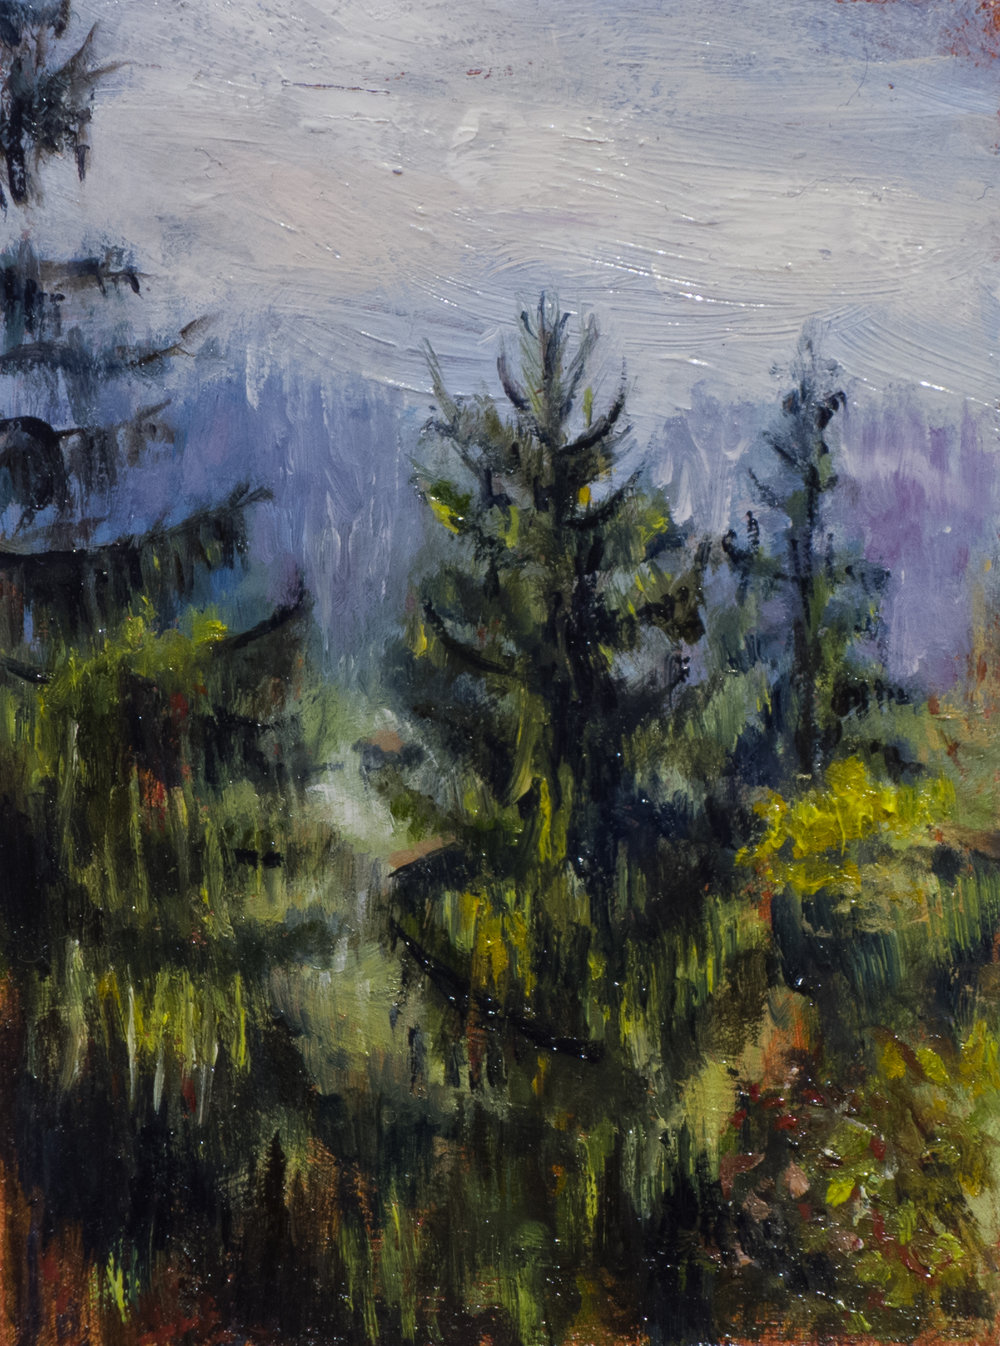 BAUMWIPFEL (sold) oil on card, 2015